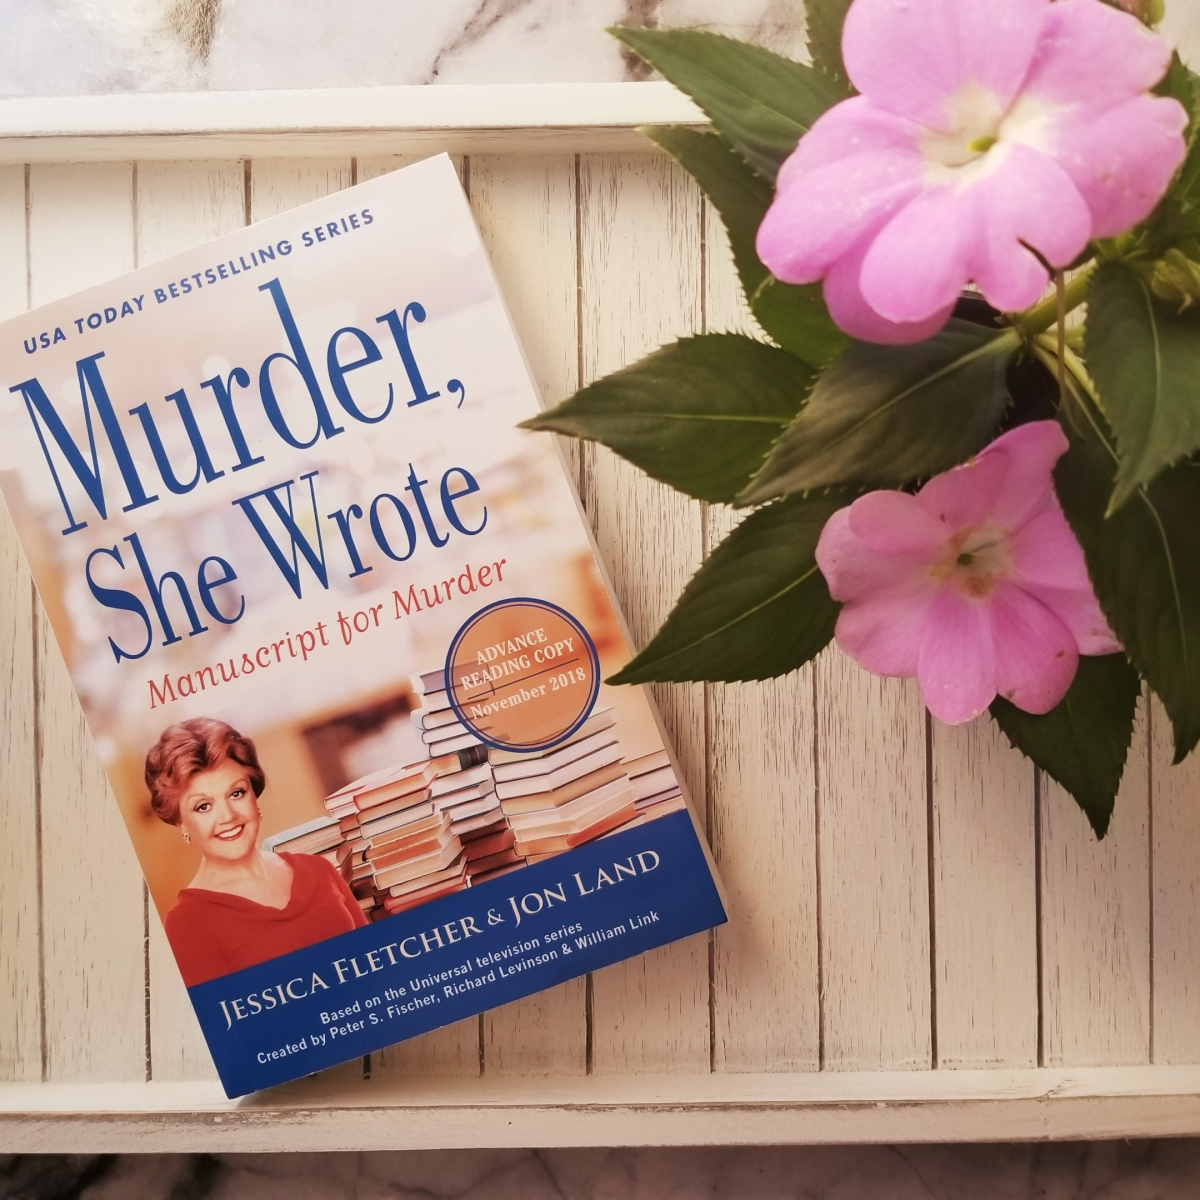 Murder, She Wrote: Manuscript for Murder by Jessica Fletcher and Jon Land #bookreview #tarheelreader #thrmanuscript @jondland @berkleypub #manuscriptformurder #6bookbestiesmurdershewrote #6bookbestieapproved